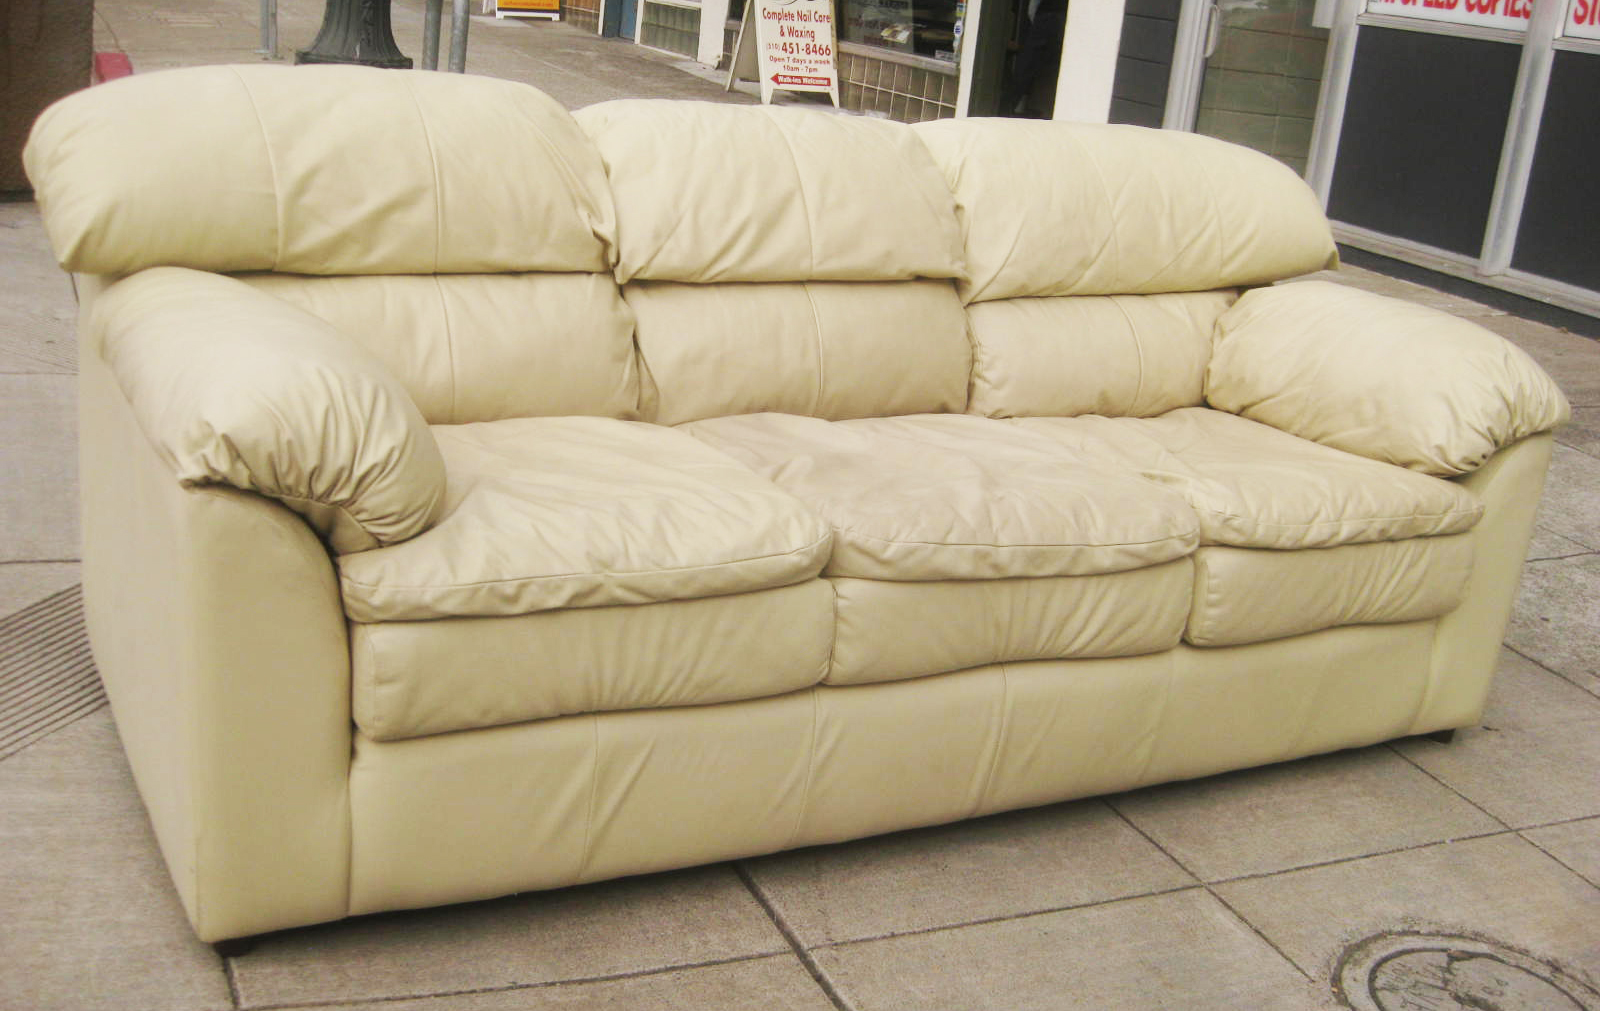 UHURU FURNITURE & COLLECTIBLES: SOLD - Beige Leather Sofa ...